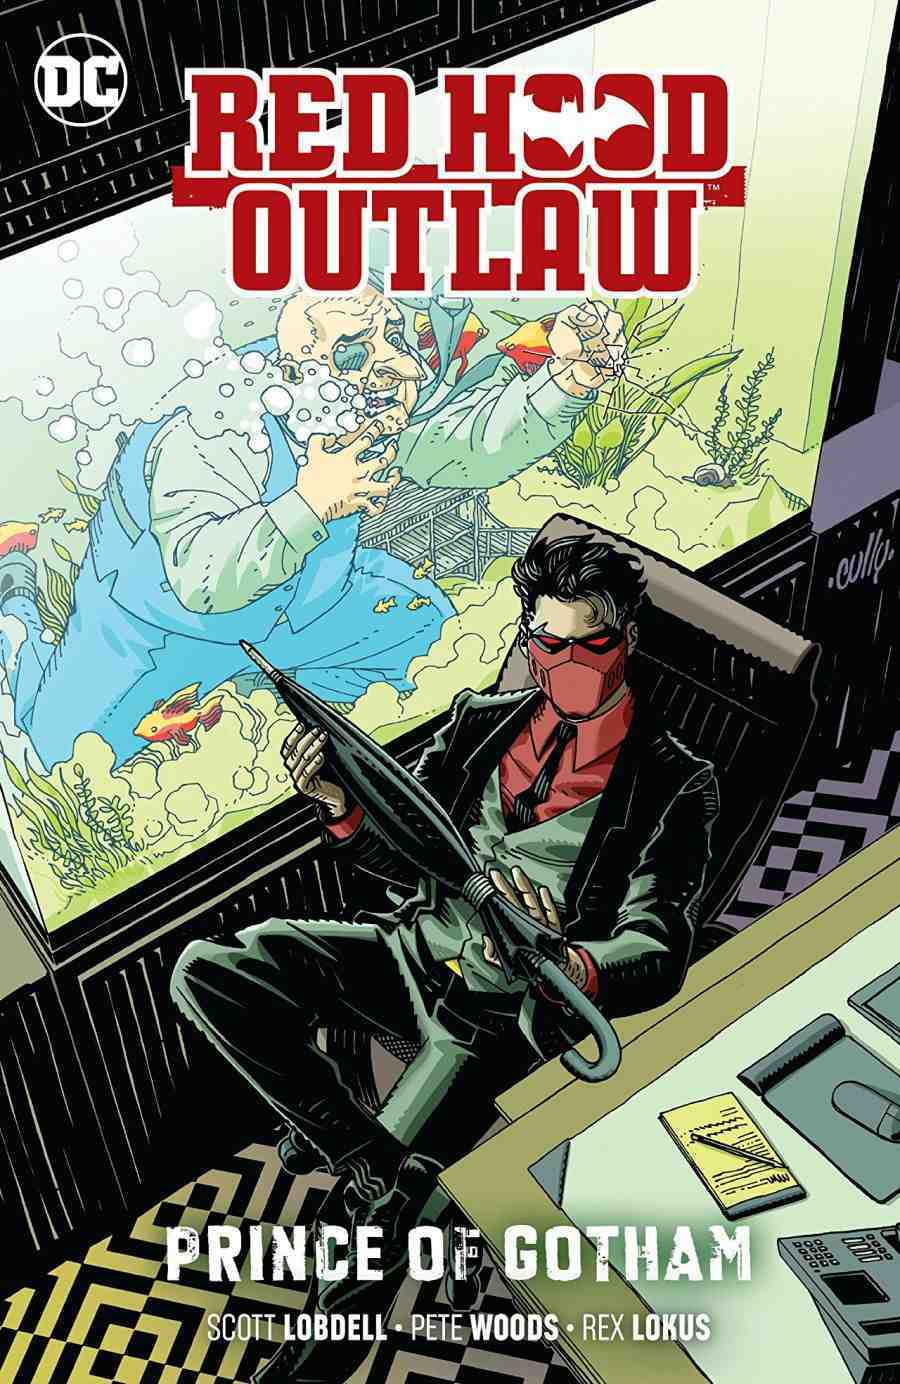 Red Hood Outlaw Vol 2 Prince of Gotham